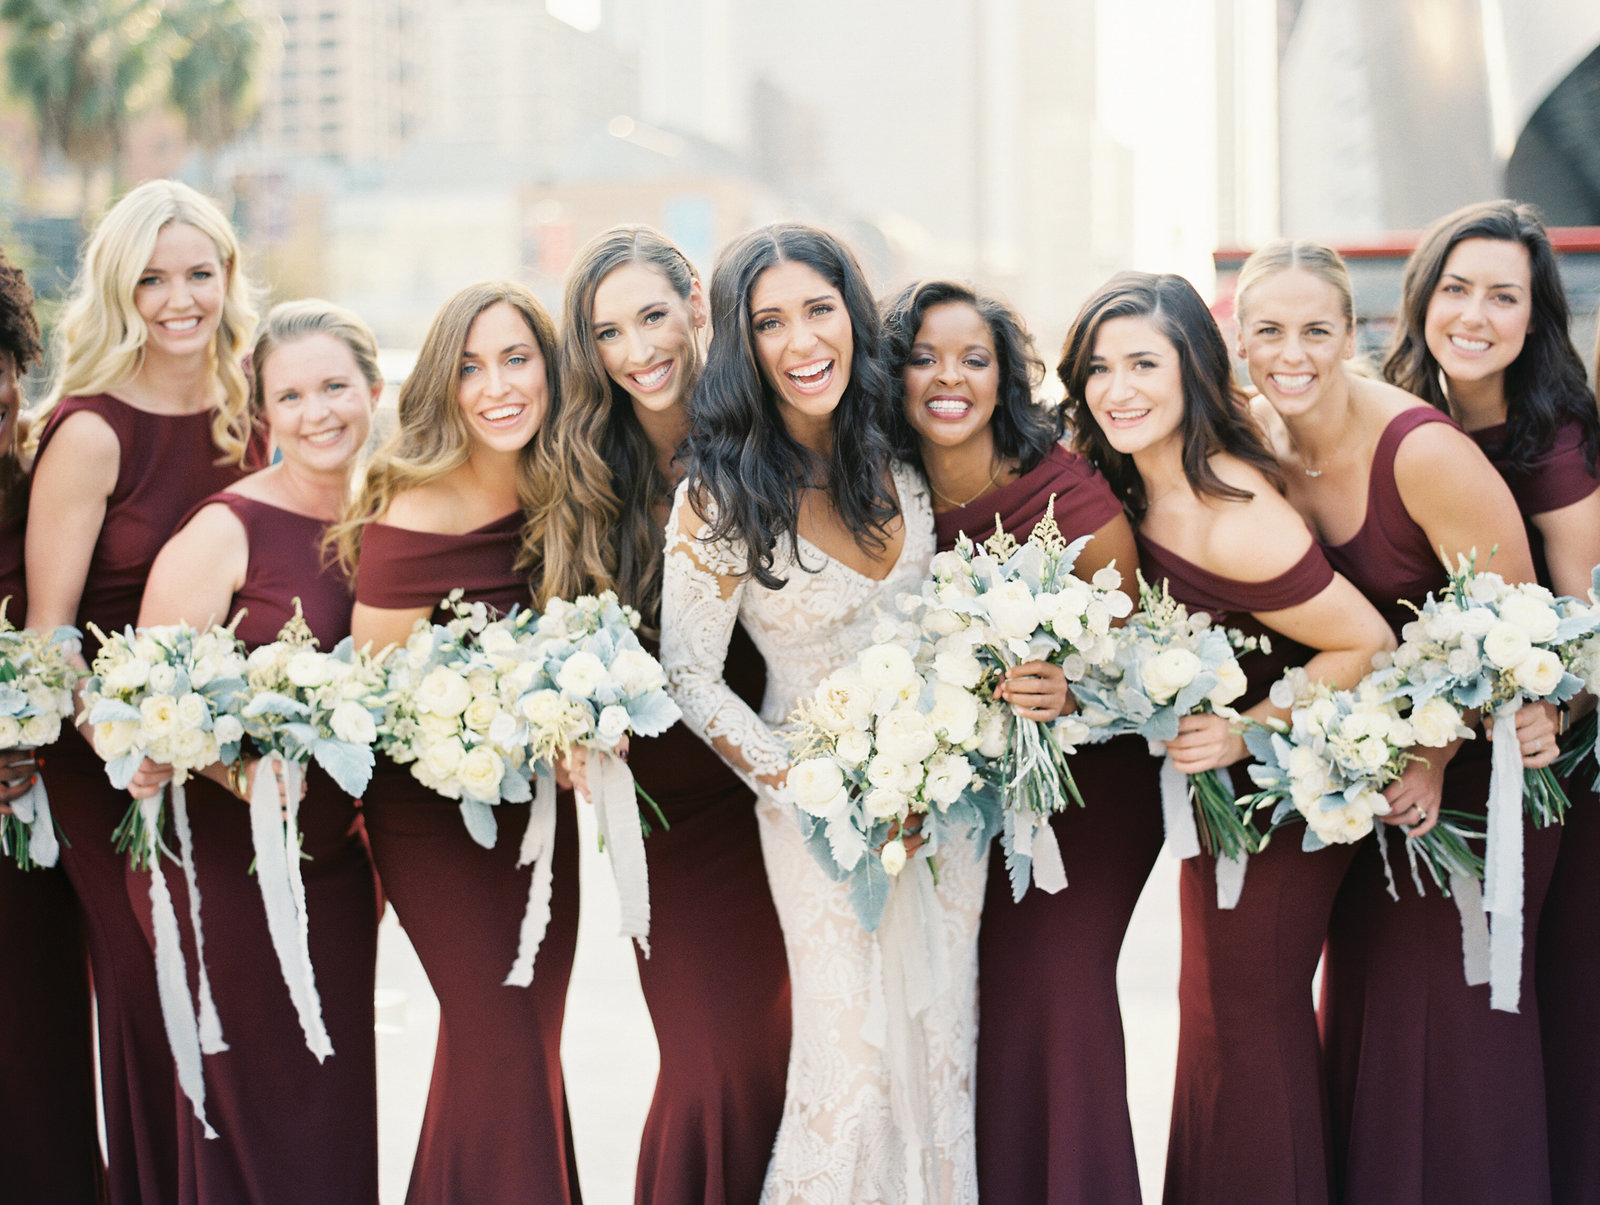 Natalie Bray Studios, Natalie Bray Photography, Southern California Wedding Photographer, Fine Art wedding, Destination Wedding Photographer, Southern california wedding photographer -71